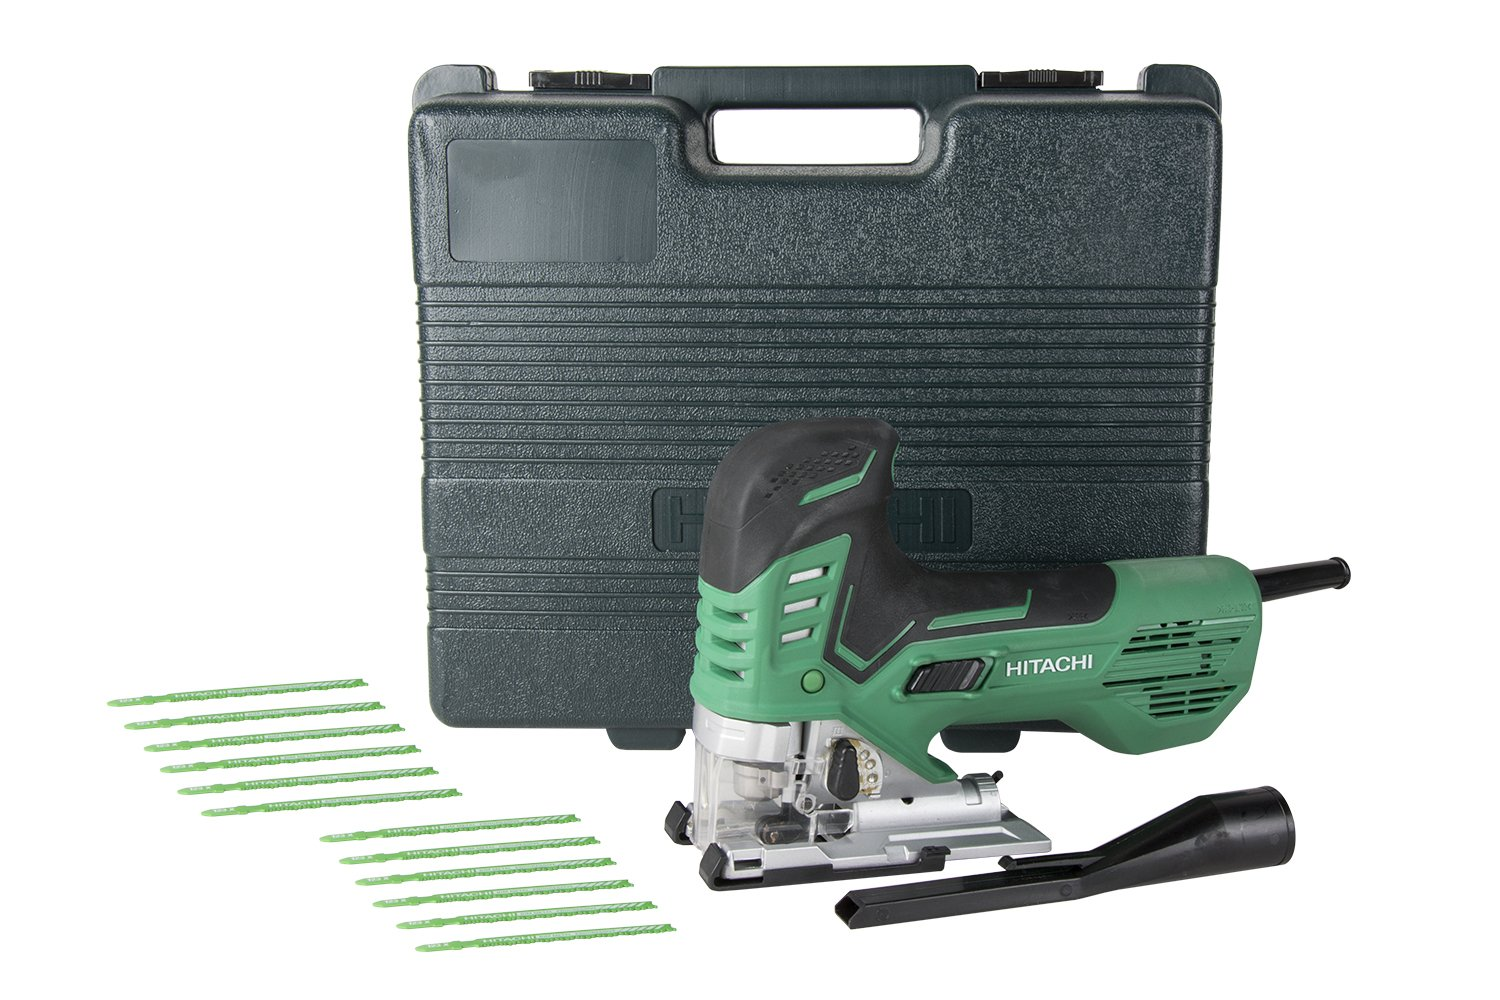 Hitachi CJ160VA Barrel Grip Variable Speed Jig Saw Discontinued by manufacturer